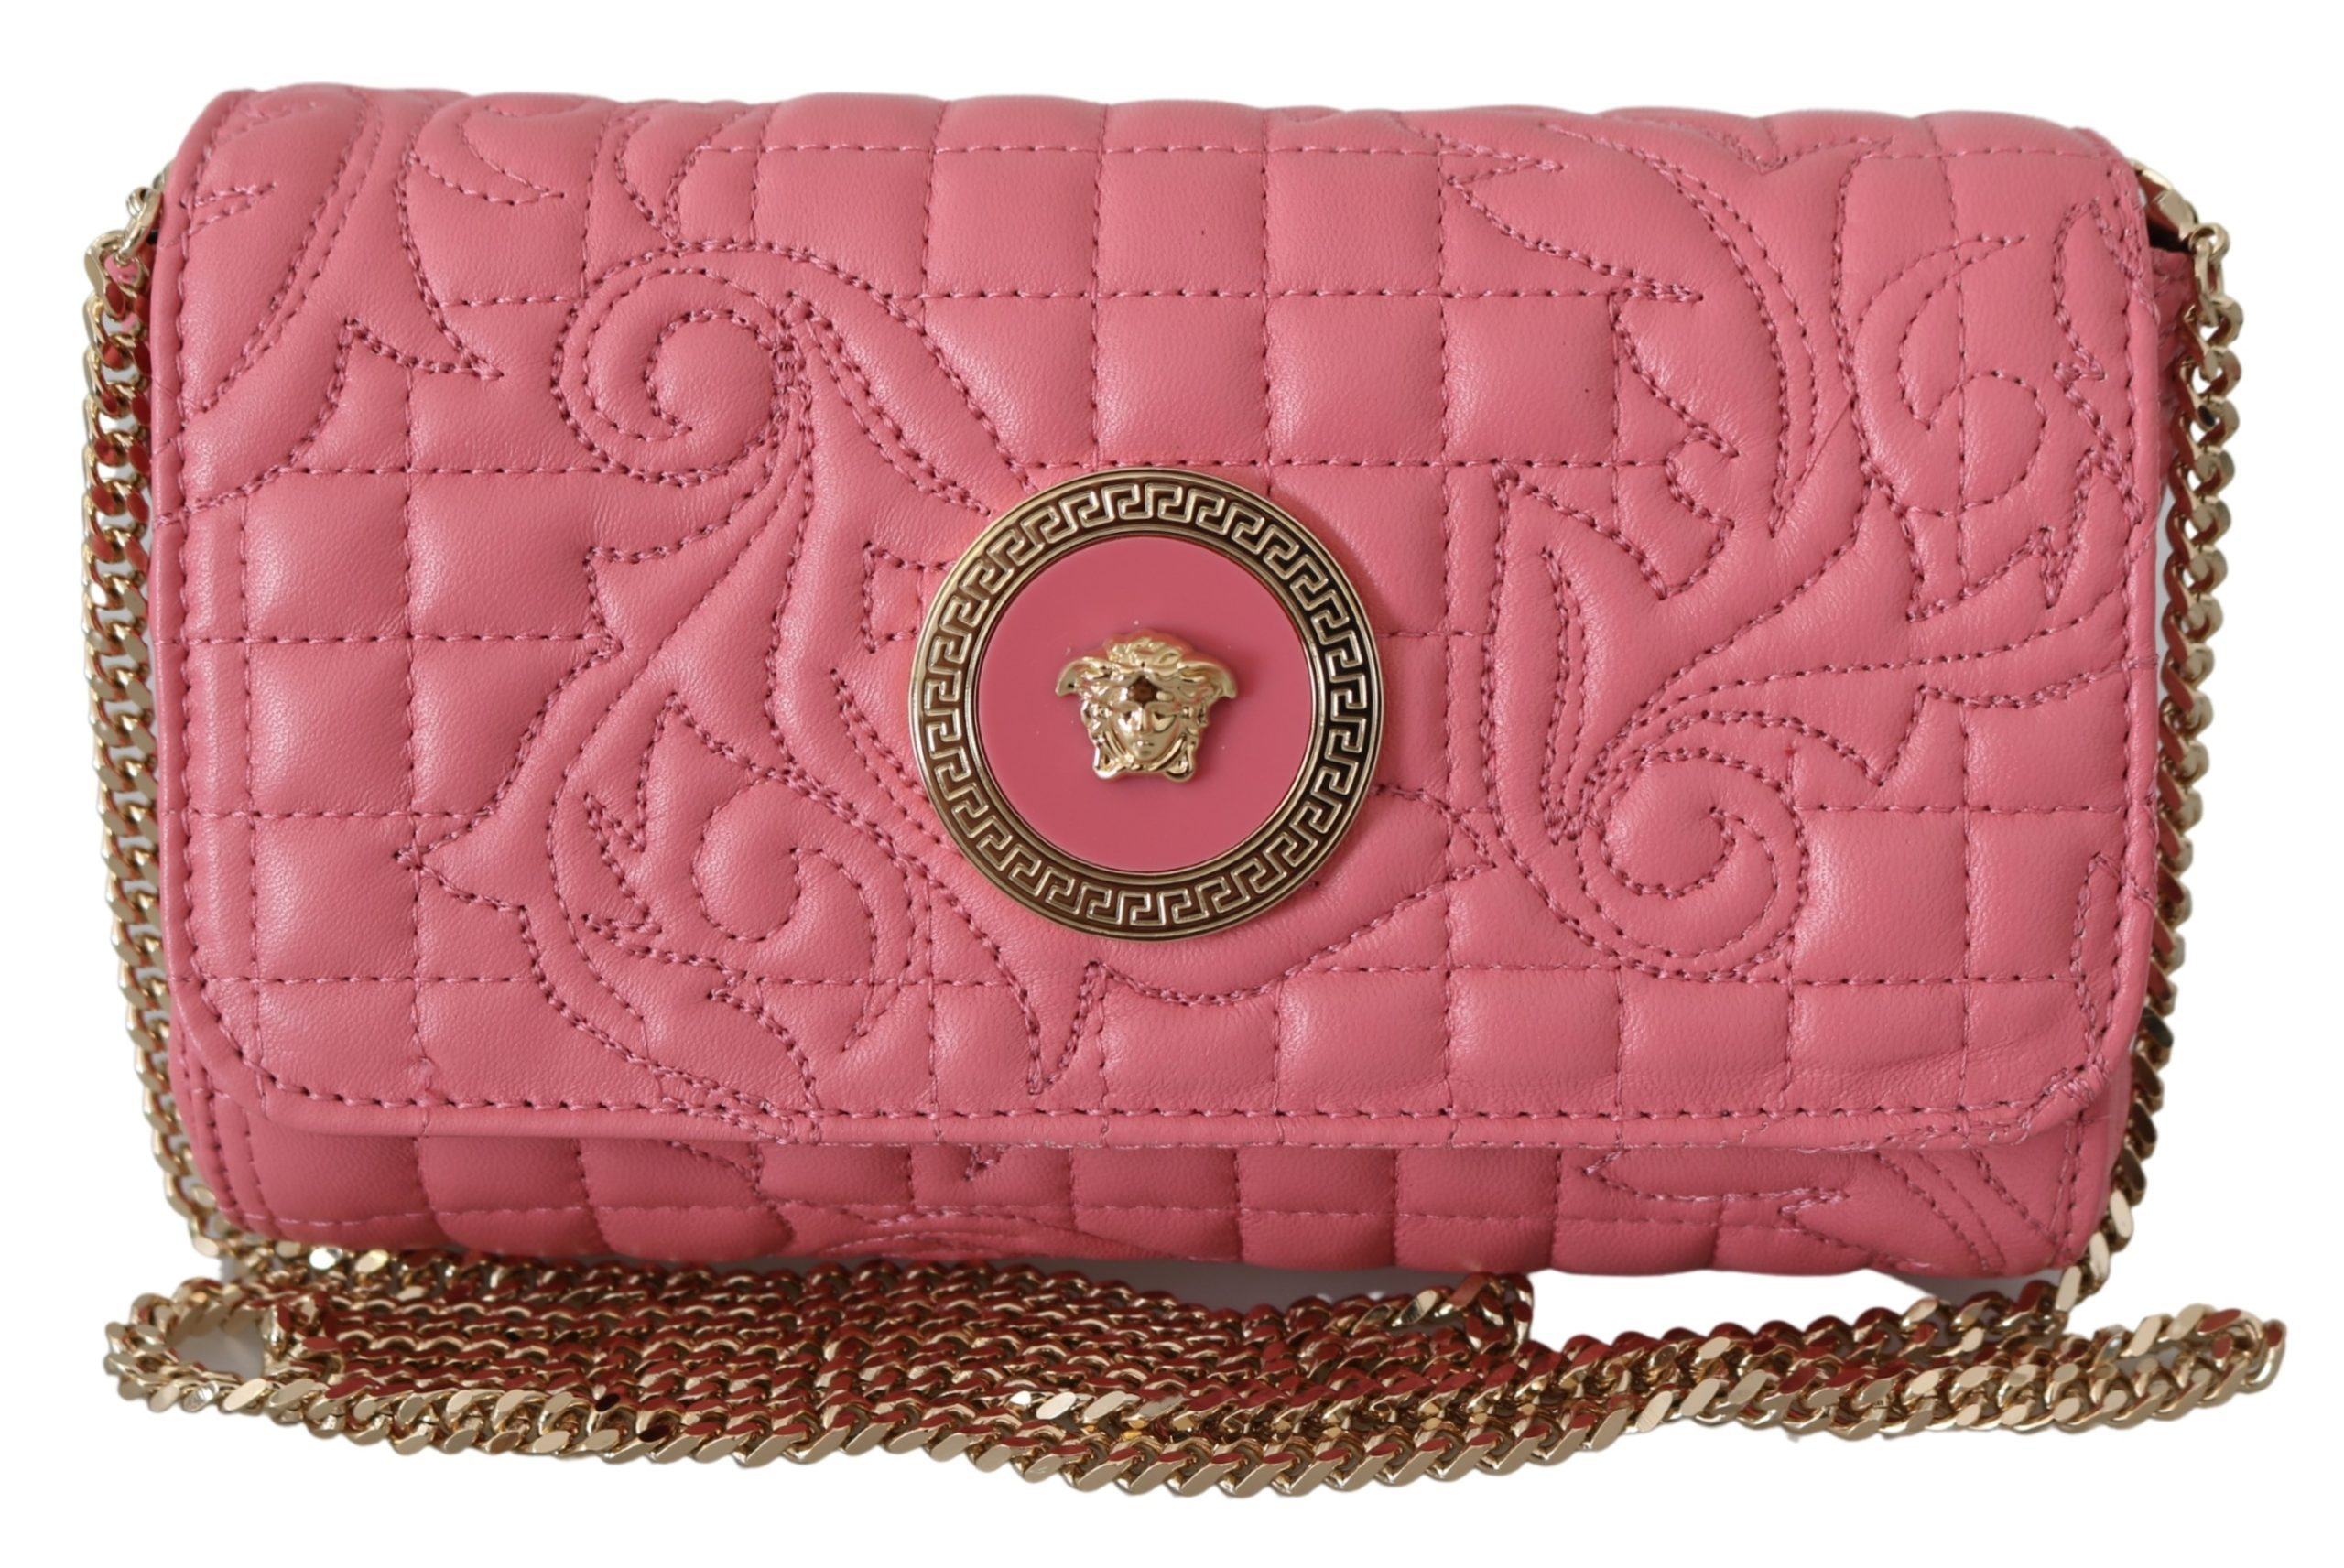 Versace Women's Mini Quilted Nappa Leather Shoulder Bag Pink 8053850414031